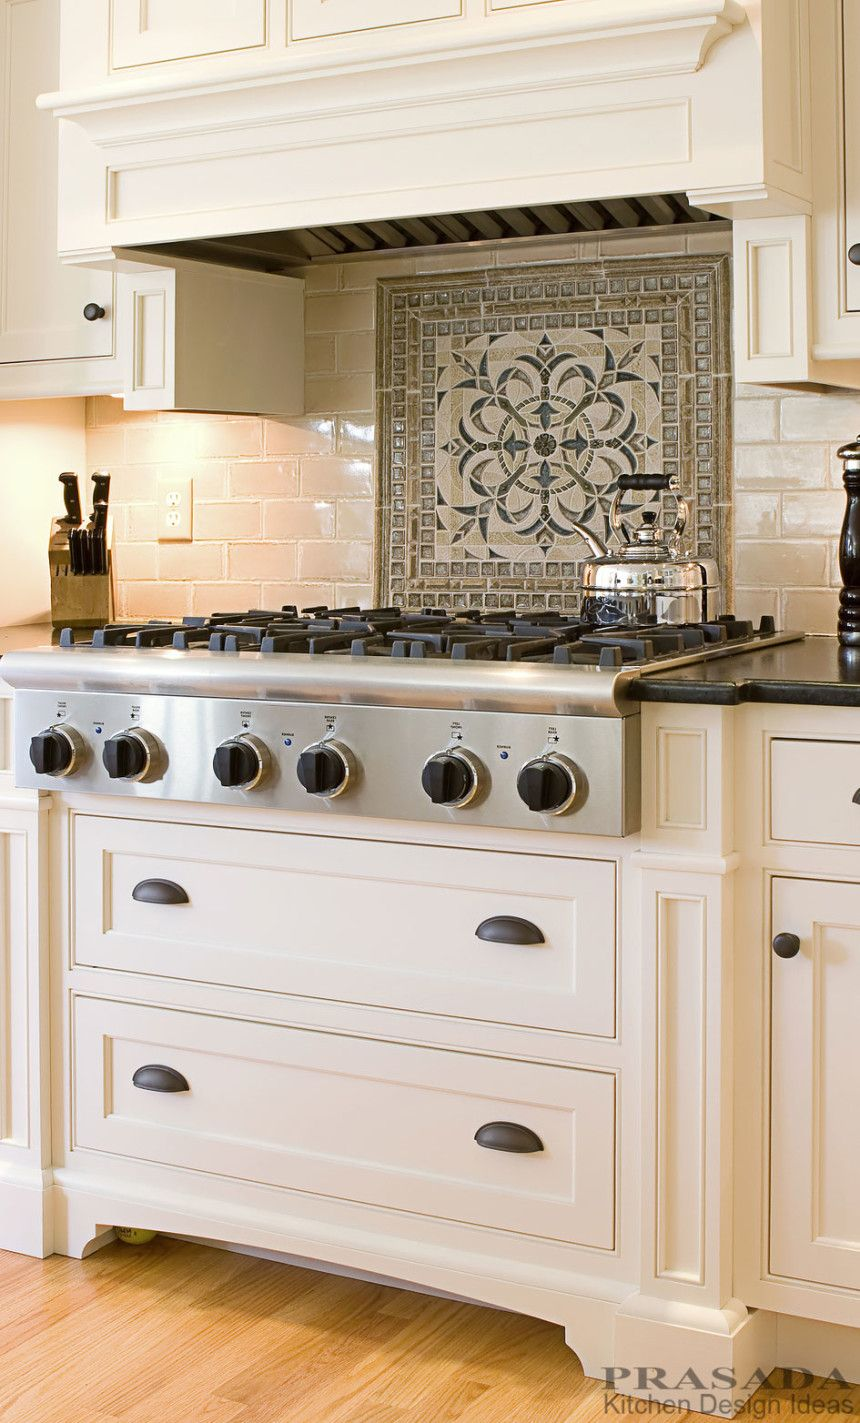 Kitchen Remodeling Oakville Ontario Prasada Kitchens And Fine Cabinetry Kitchen Backsplash Designs Kitchen Design Farmhouse Kitchen Backsplash